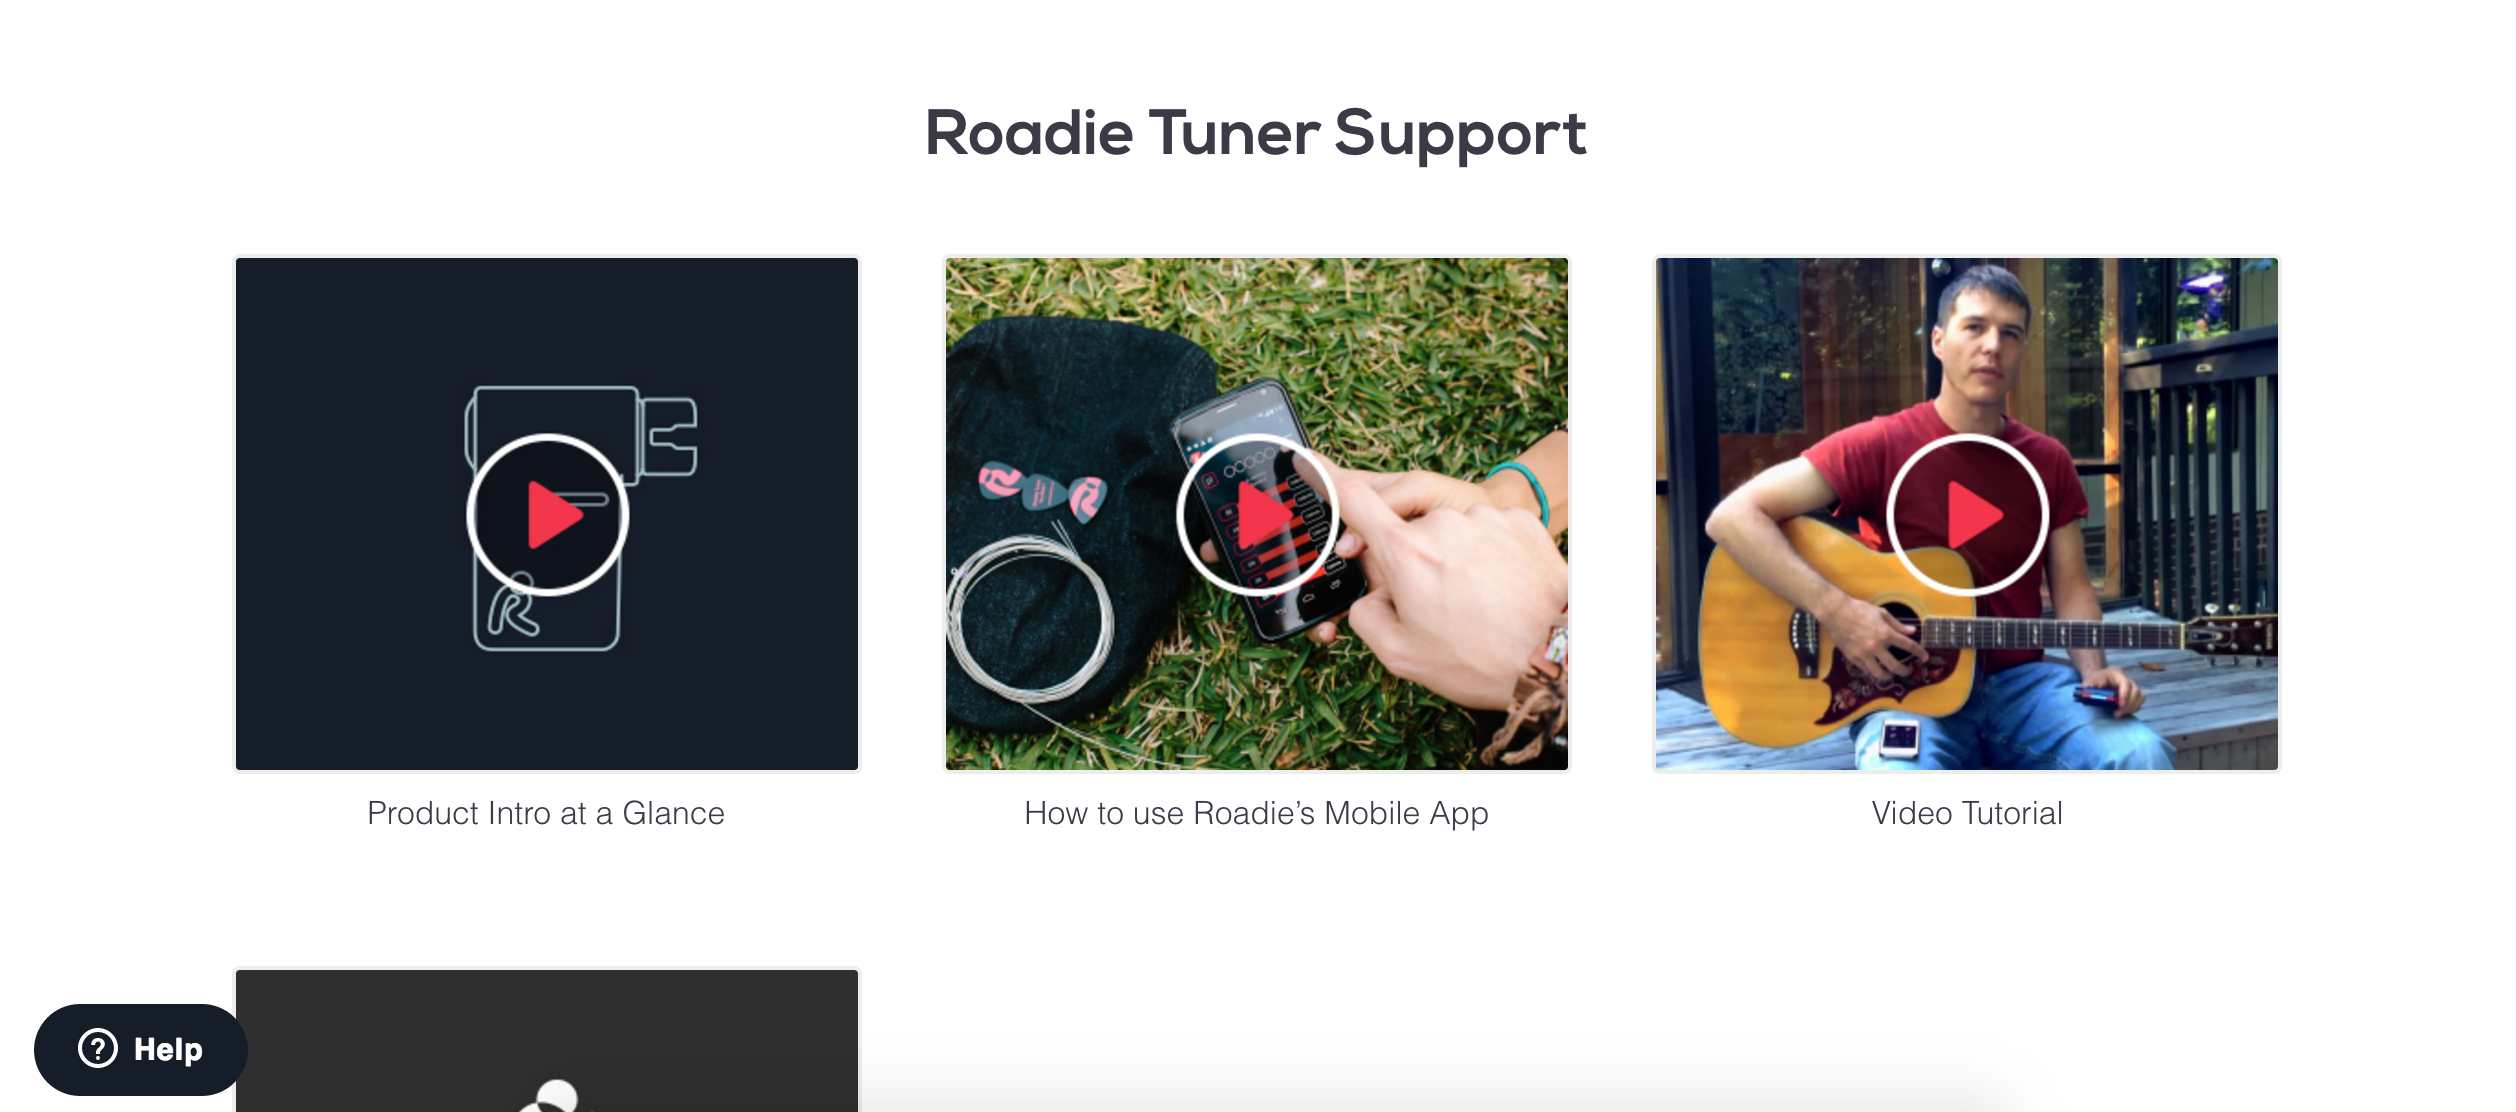 Four videos await customers looking for support, whether they're looking to use the tuner for the first time or having trouble getting it to work again.